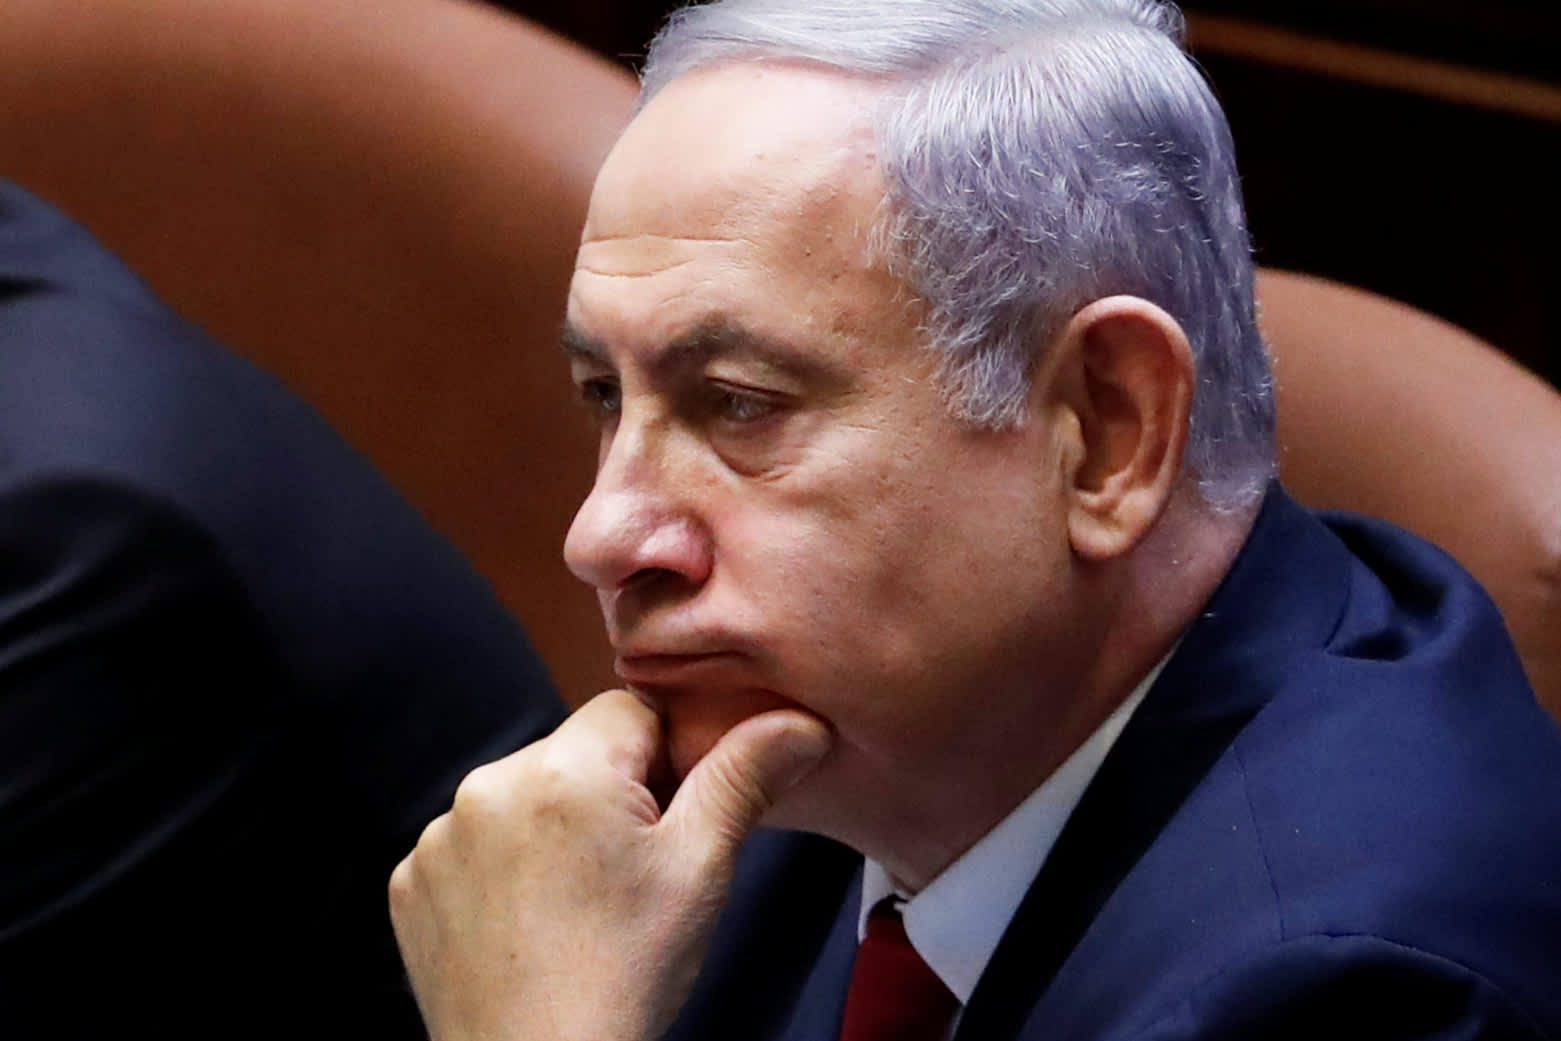 With Netanyahu's fate in question, Israel poised for new election